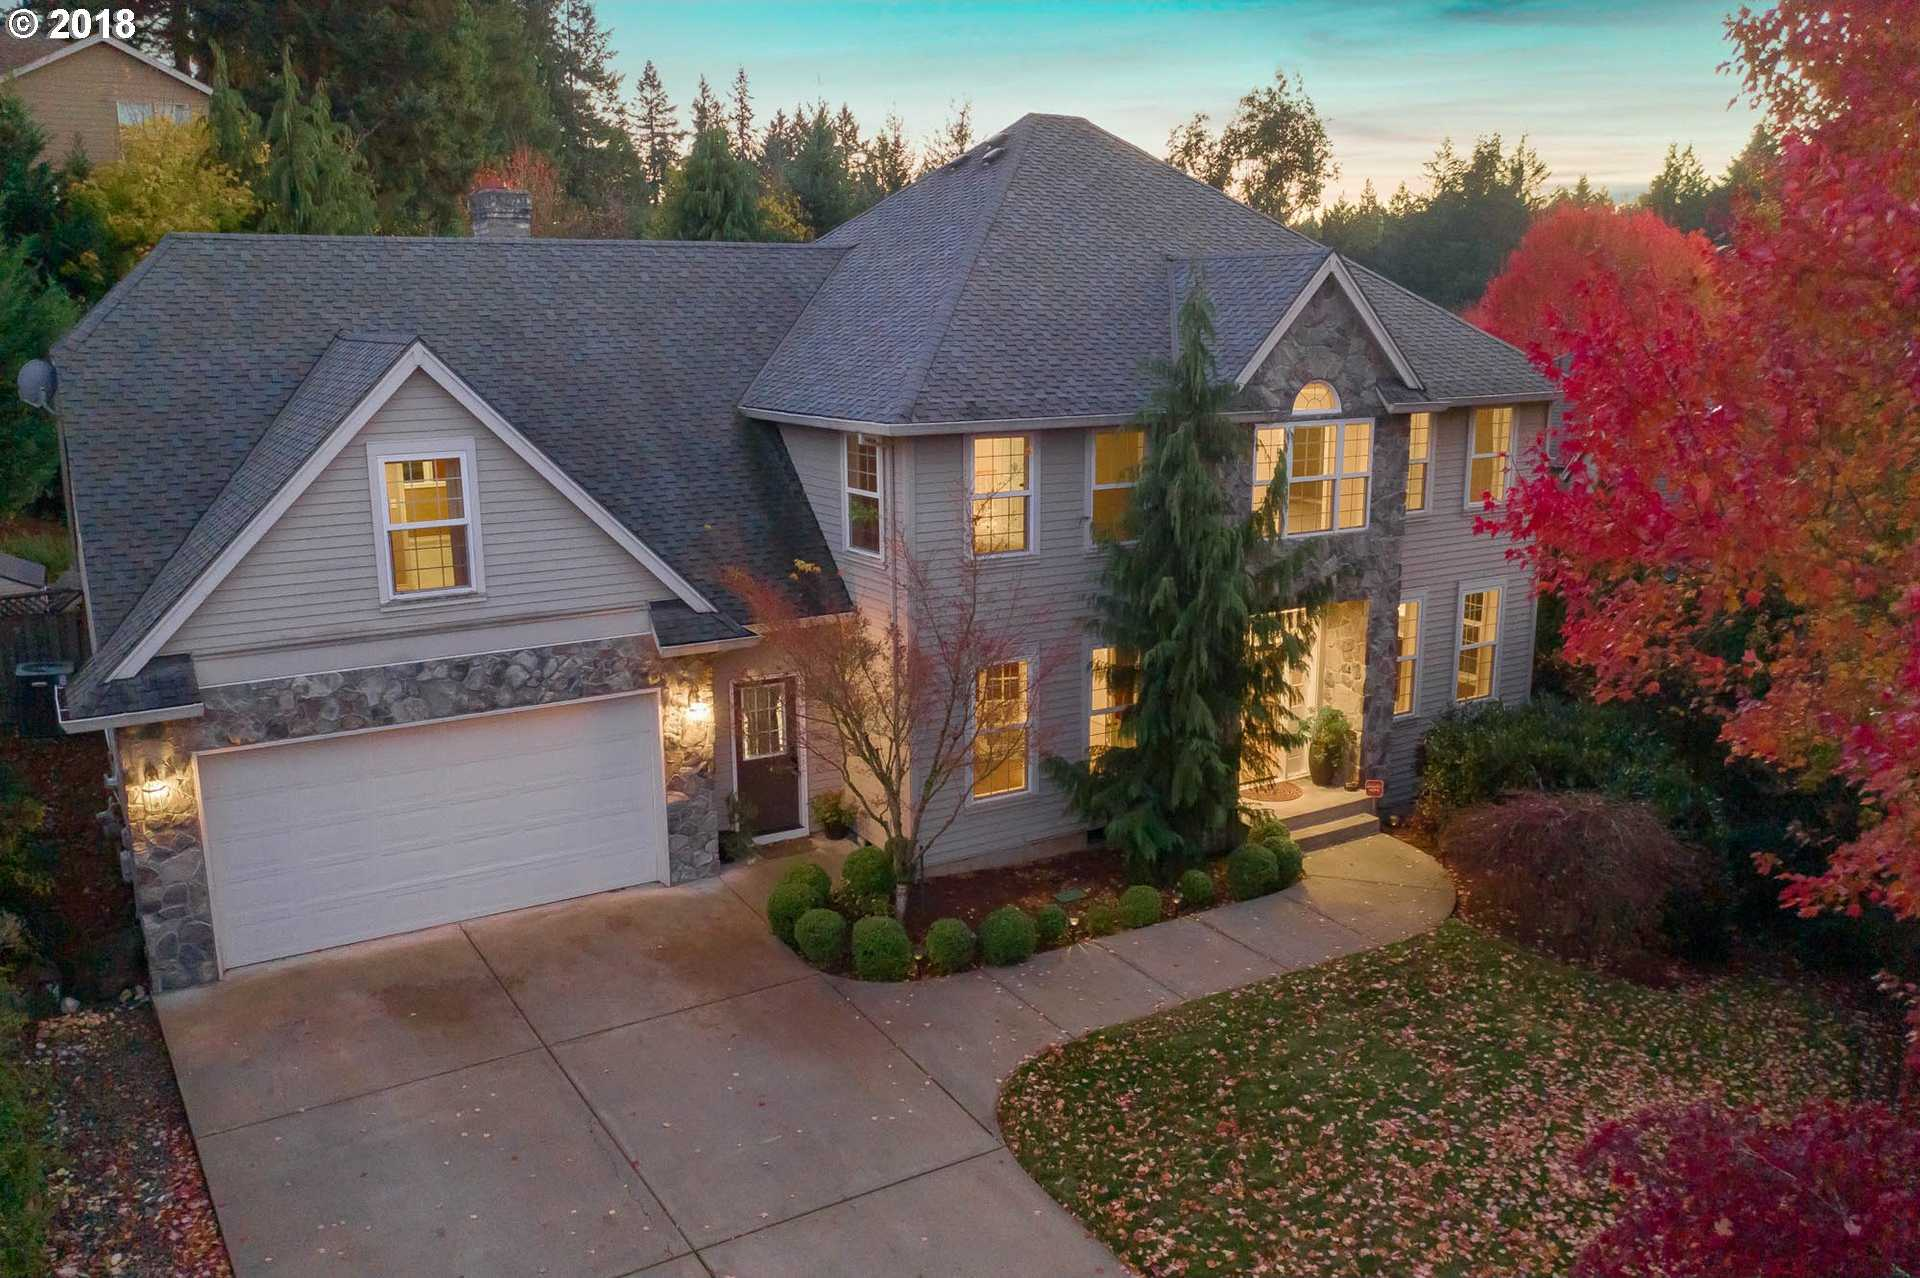 $719,900 - 4Br/3Ba -  for Sale in Tualatin